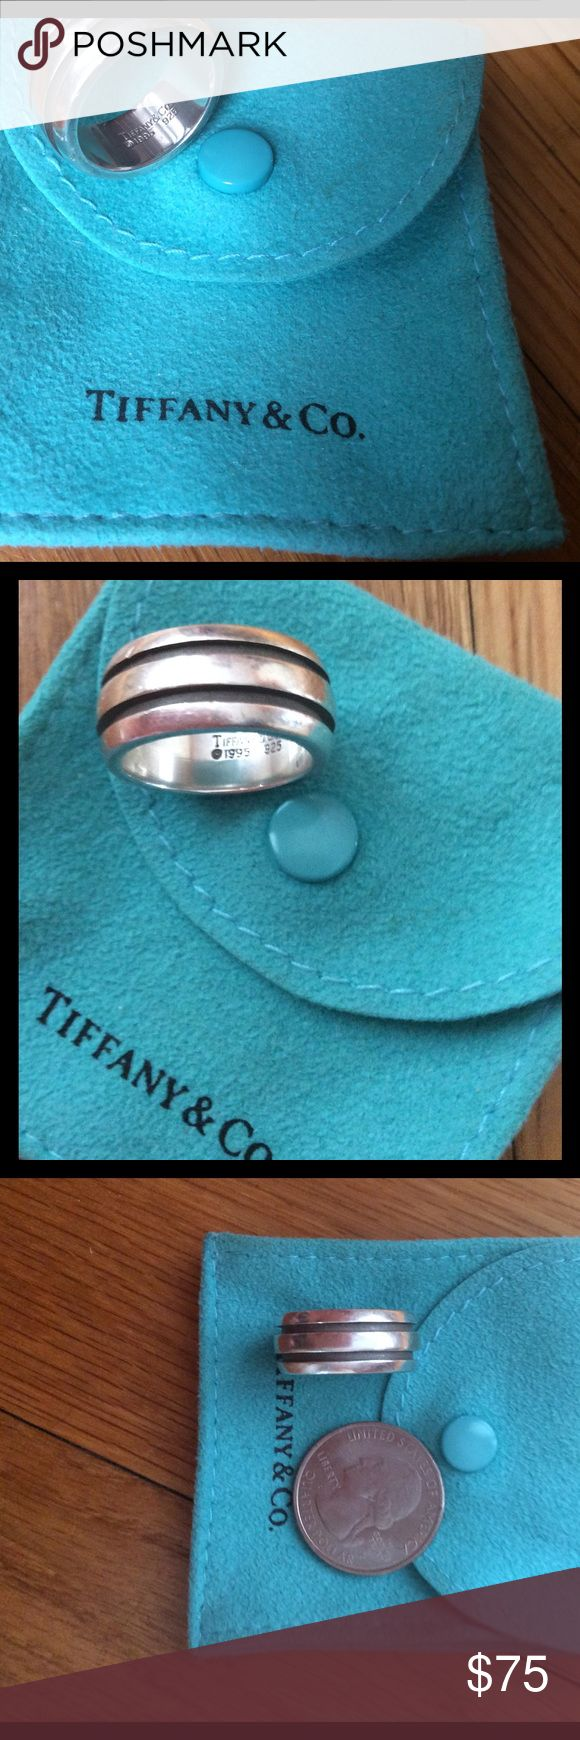 1000 Ideas About Tiffany Rings On Pinterest Tiffany